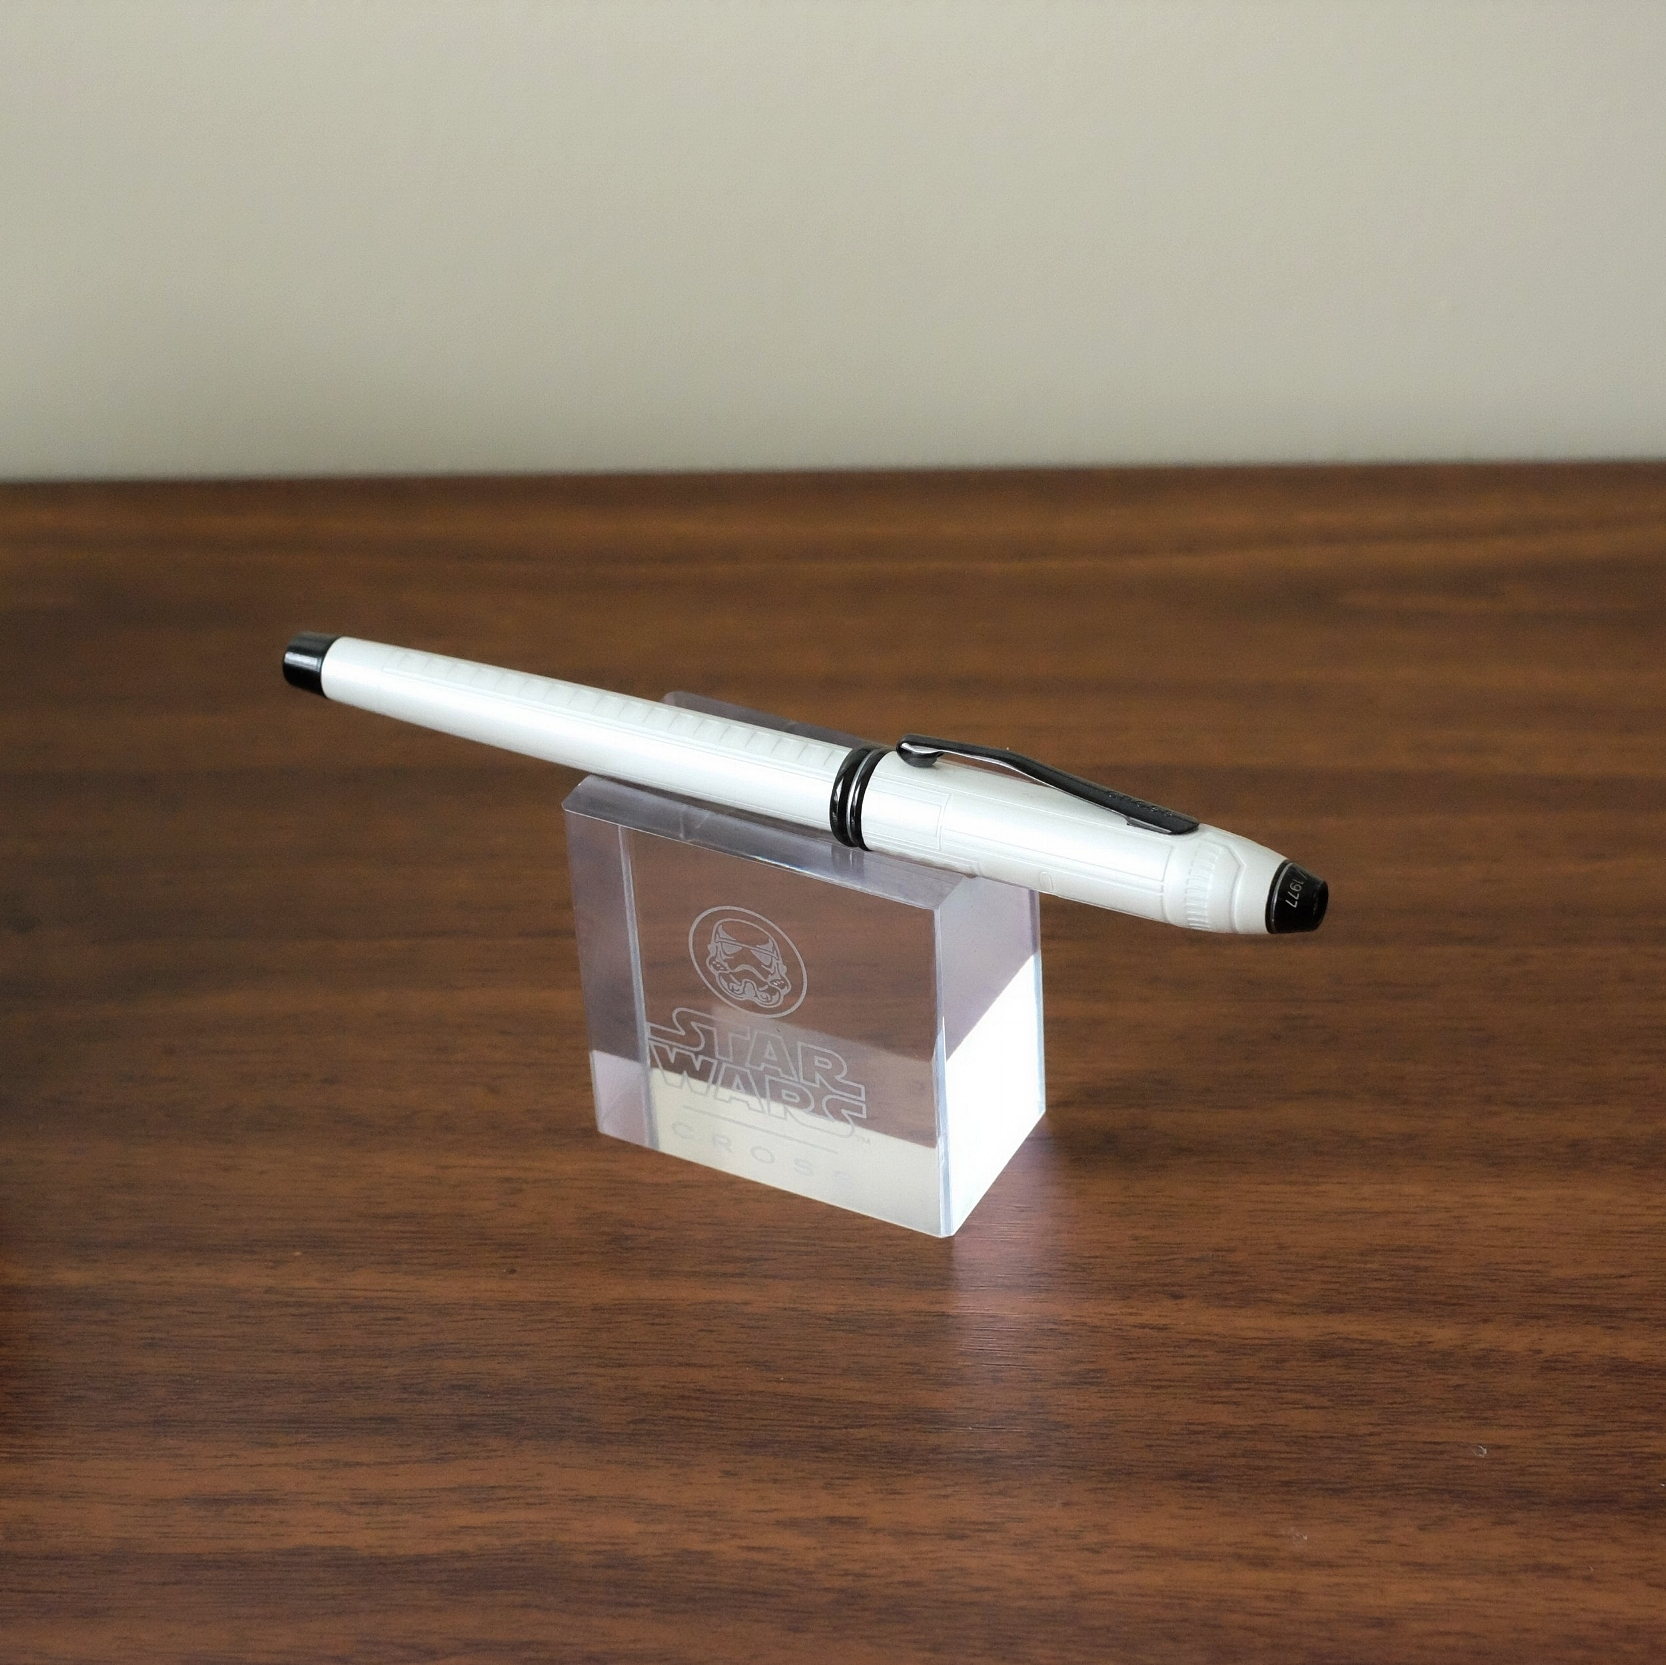 The Cross Townsend Star Wars Pens come with this nifty clear acrylic pen stand.